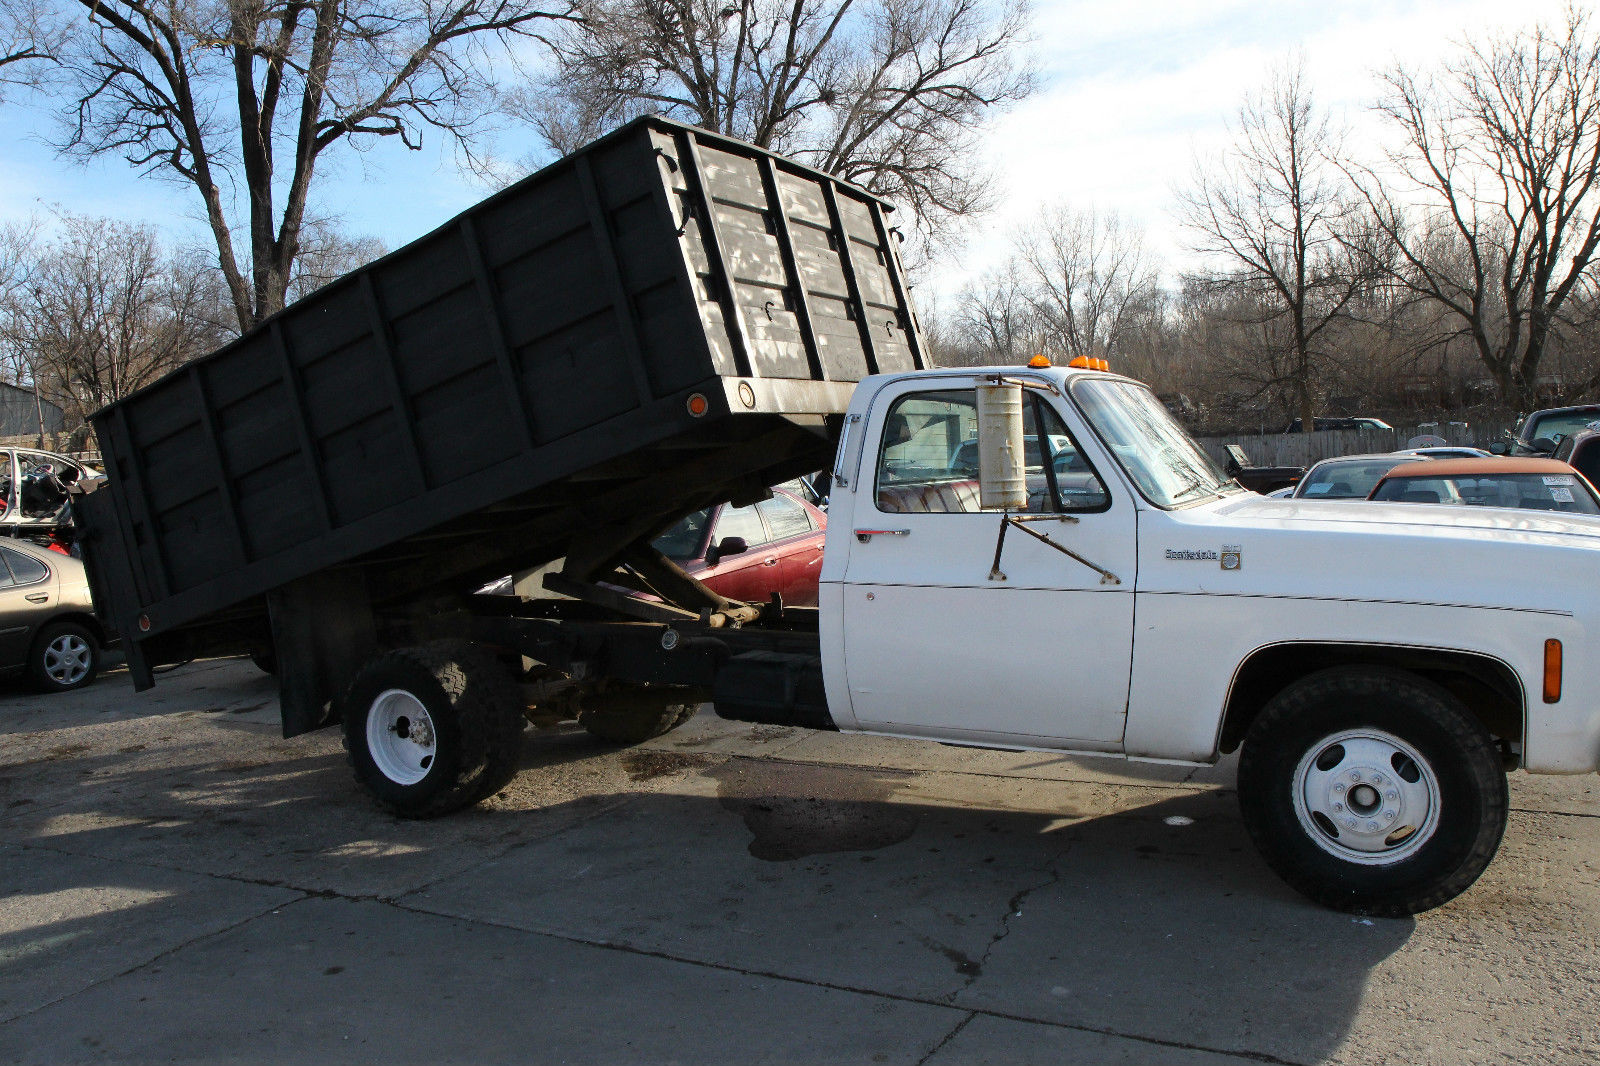 1975 Chevy 1 Ton Dump Truck W Hydraulic Tommy Lift Runs Great 58k Miles For Sale In Council Bluffs Iowa United States For Sale Photos Technical Specifications Description